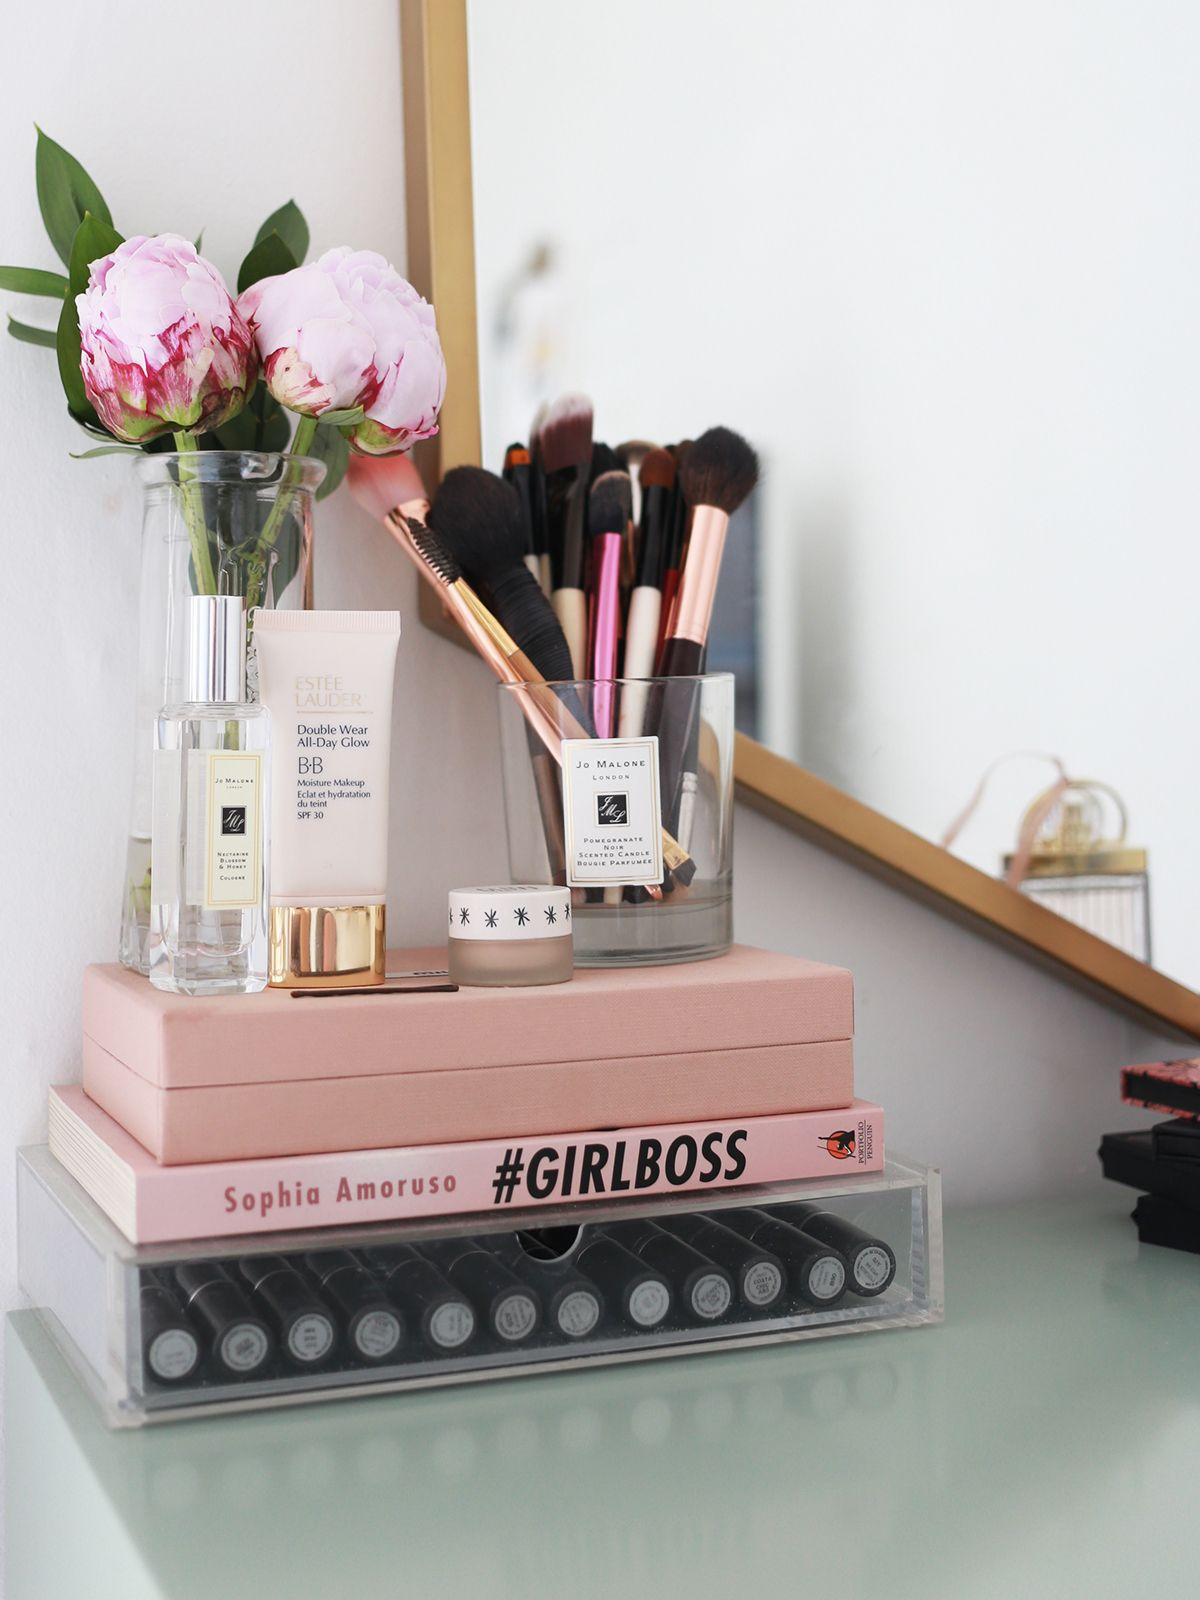 Aufbewahrung Kosmetik Ideen My Makeup Collection We Love Makeup Pinterest